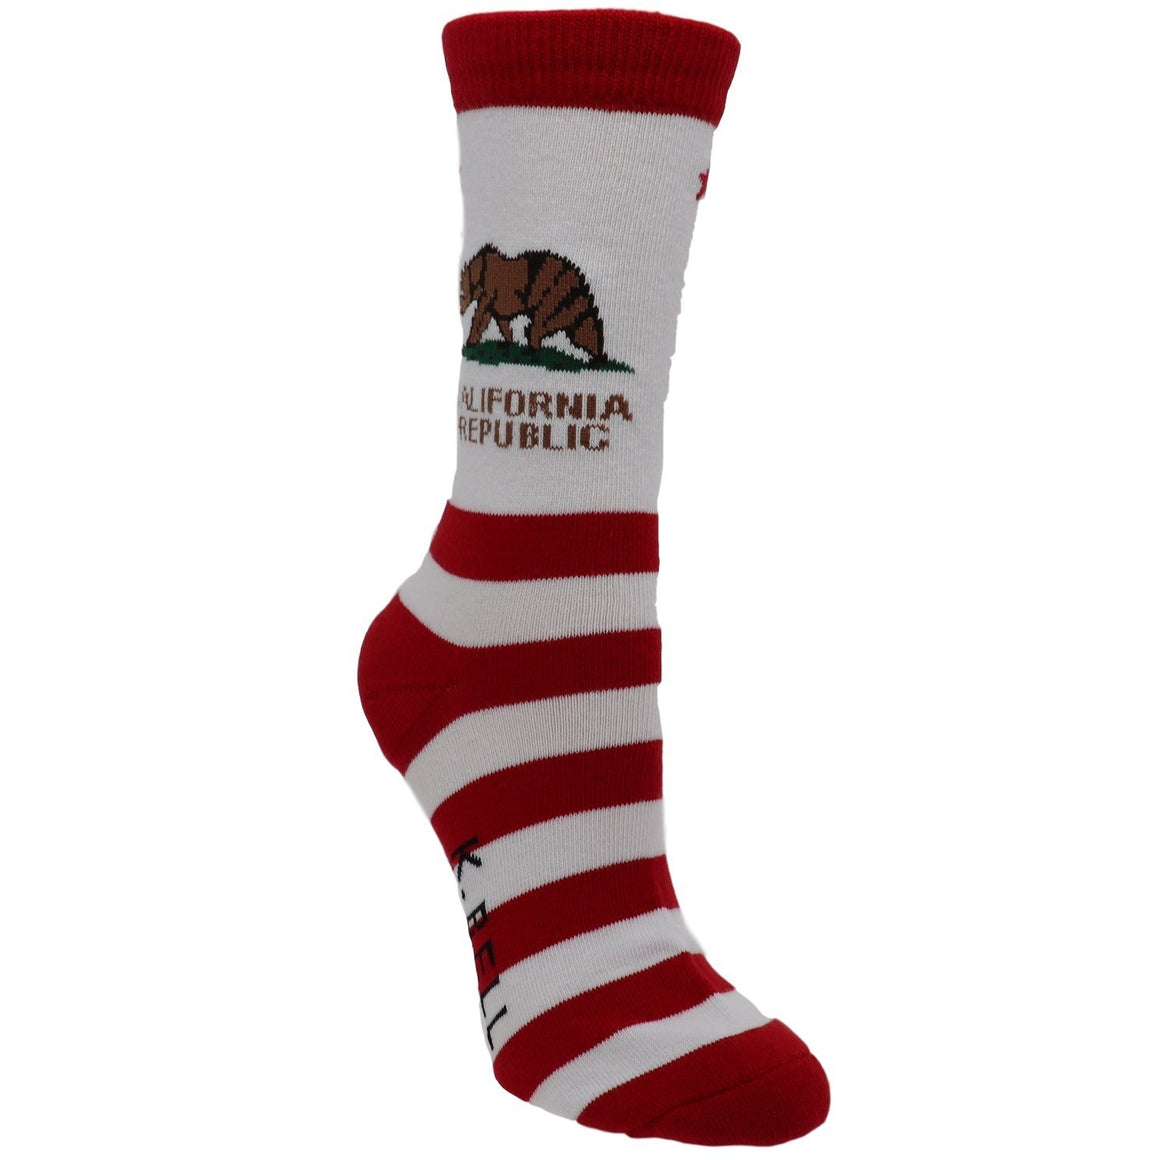 California Republic Women's Socks - Made In America by K.Bell - The Sock Spot